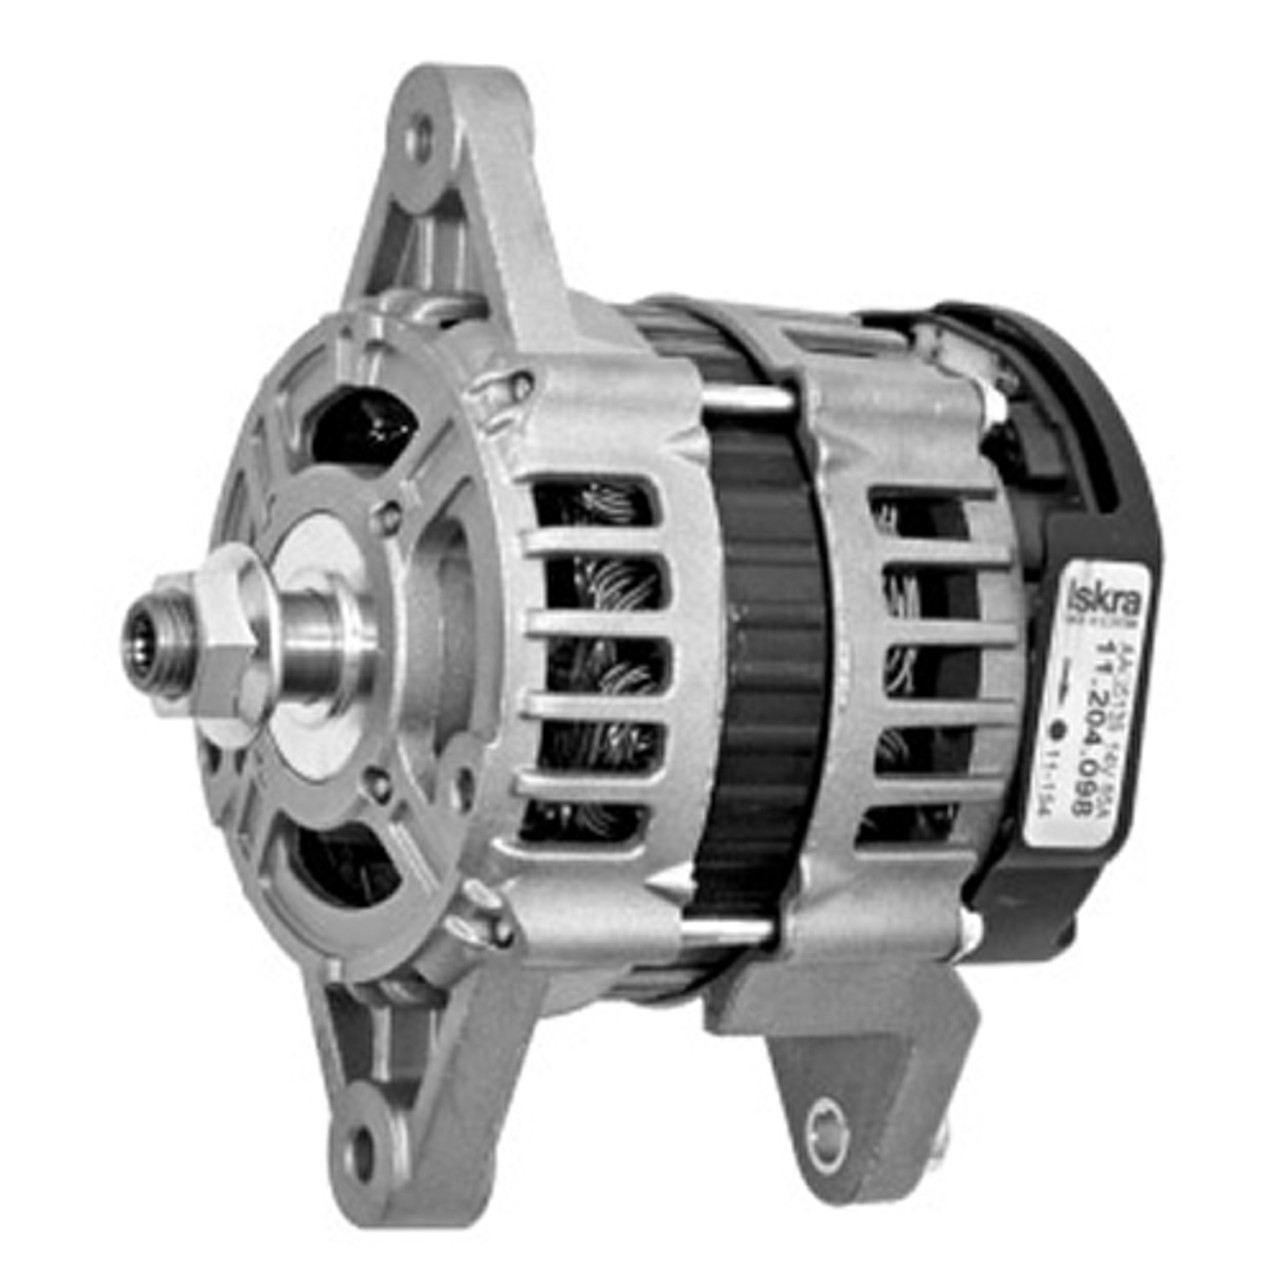 medium resolution of deutz ag khd l4 3 6 engine letrika alternator mg75